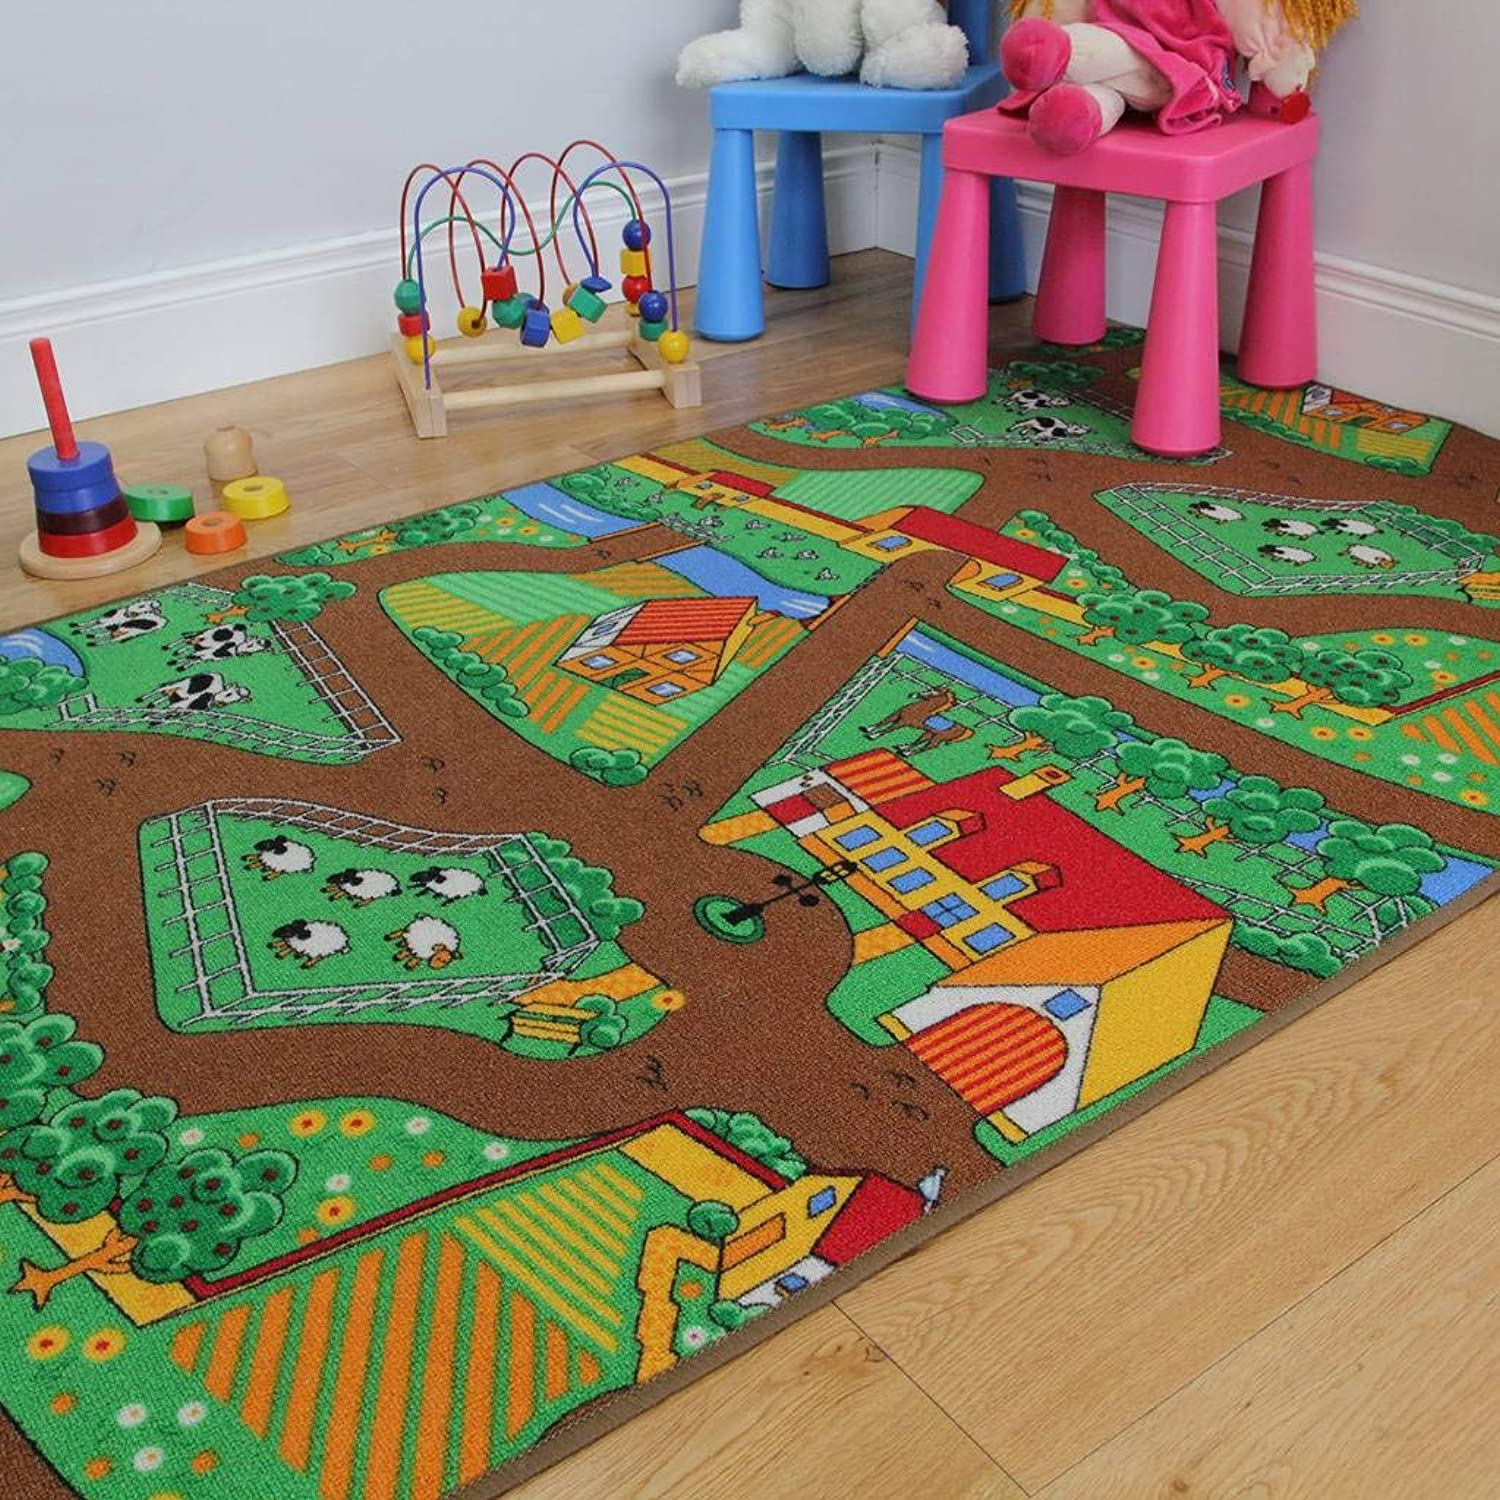 The Rug House Fun Kid's Country Farm Life Mat Animal and Tractor Rug 100cm x 165cm (3ft 3  x 5ft 5 ), Polyproplene, Green